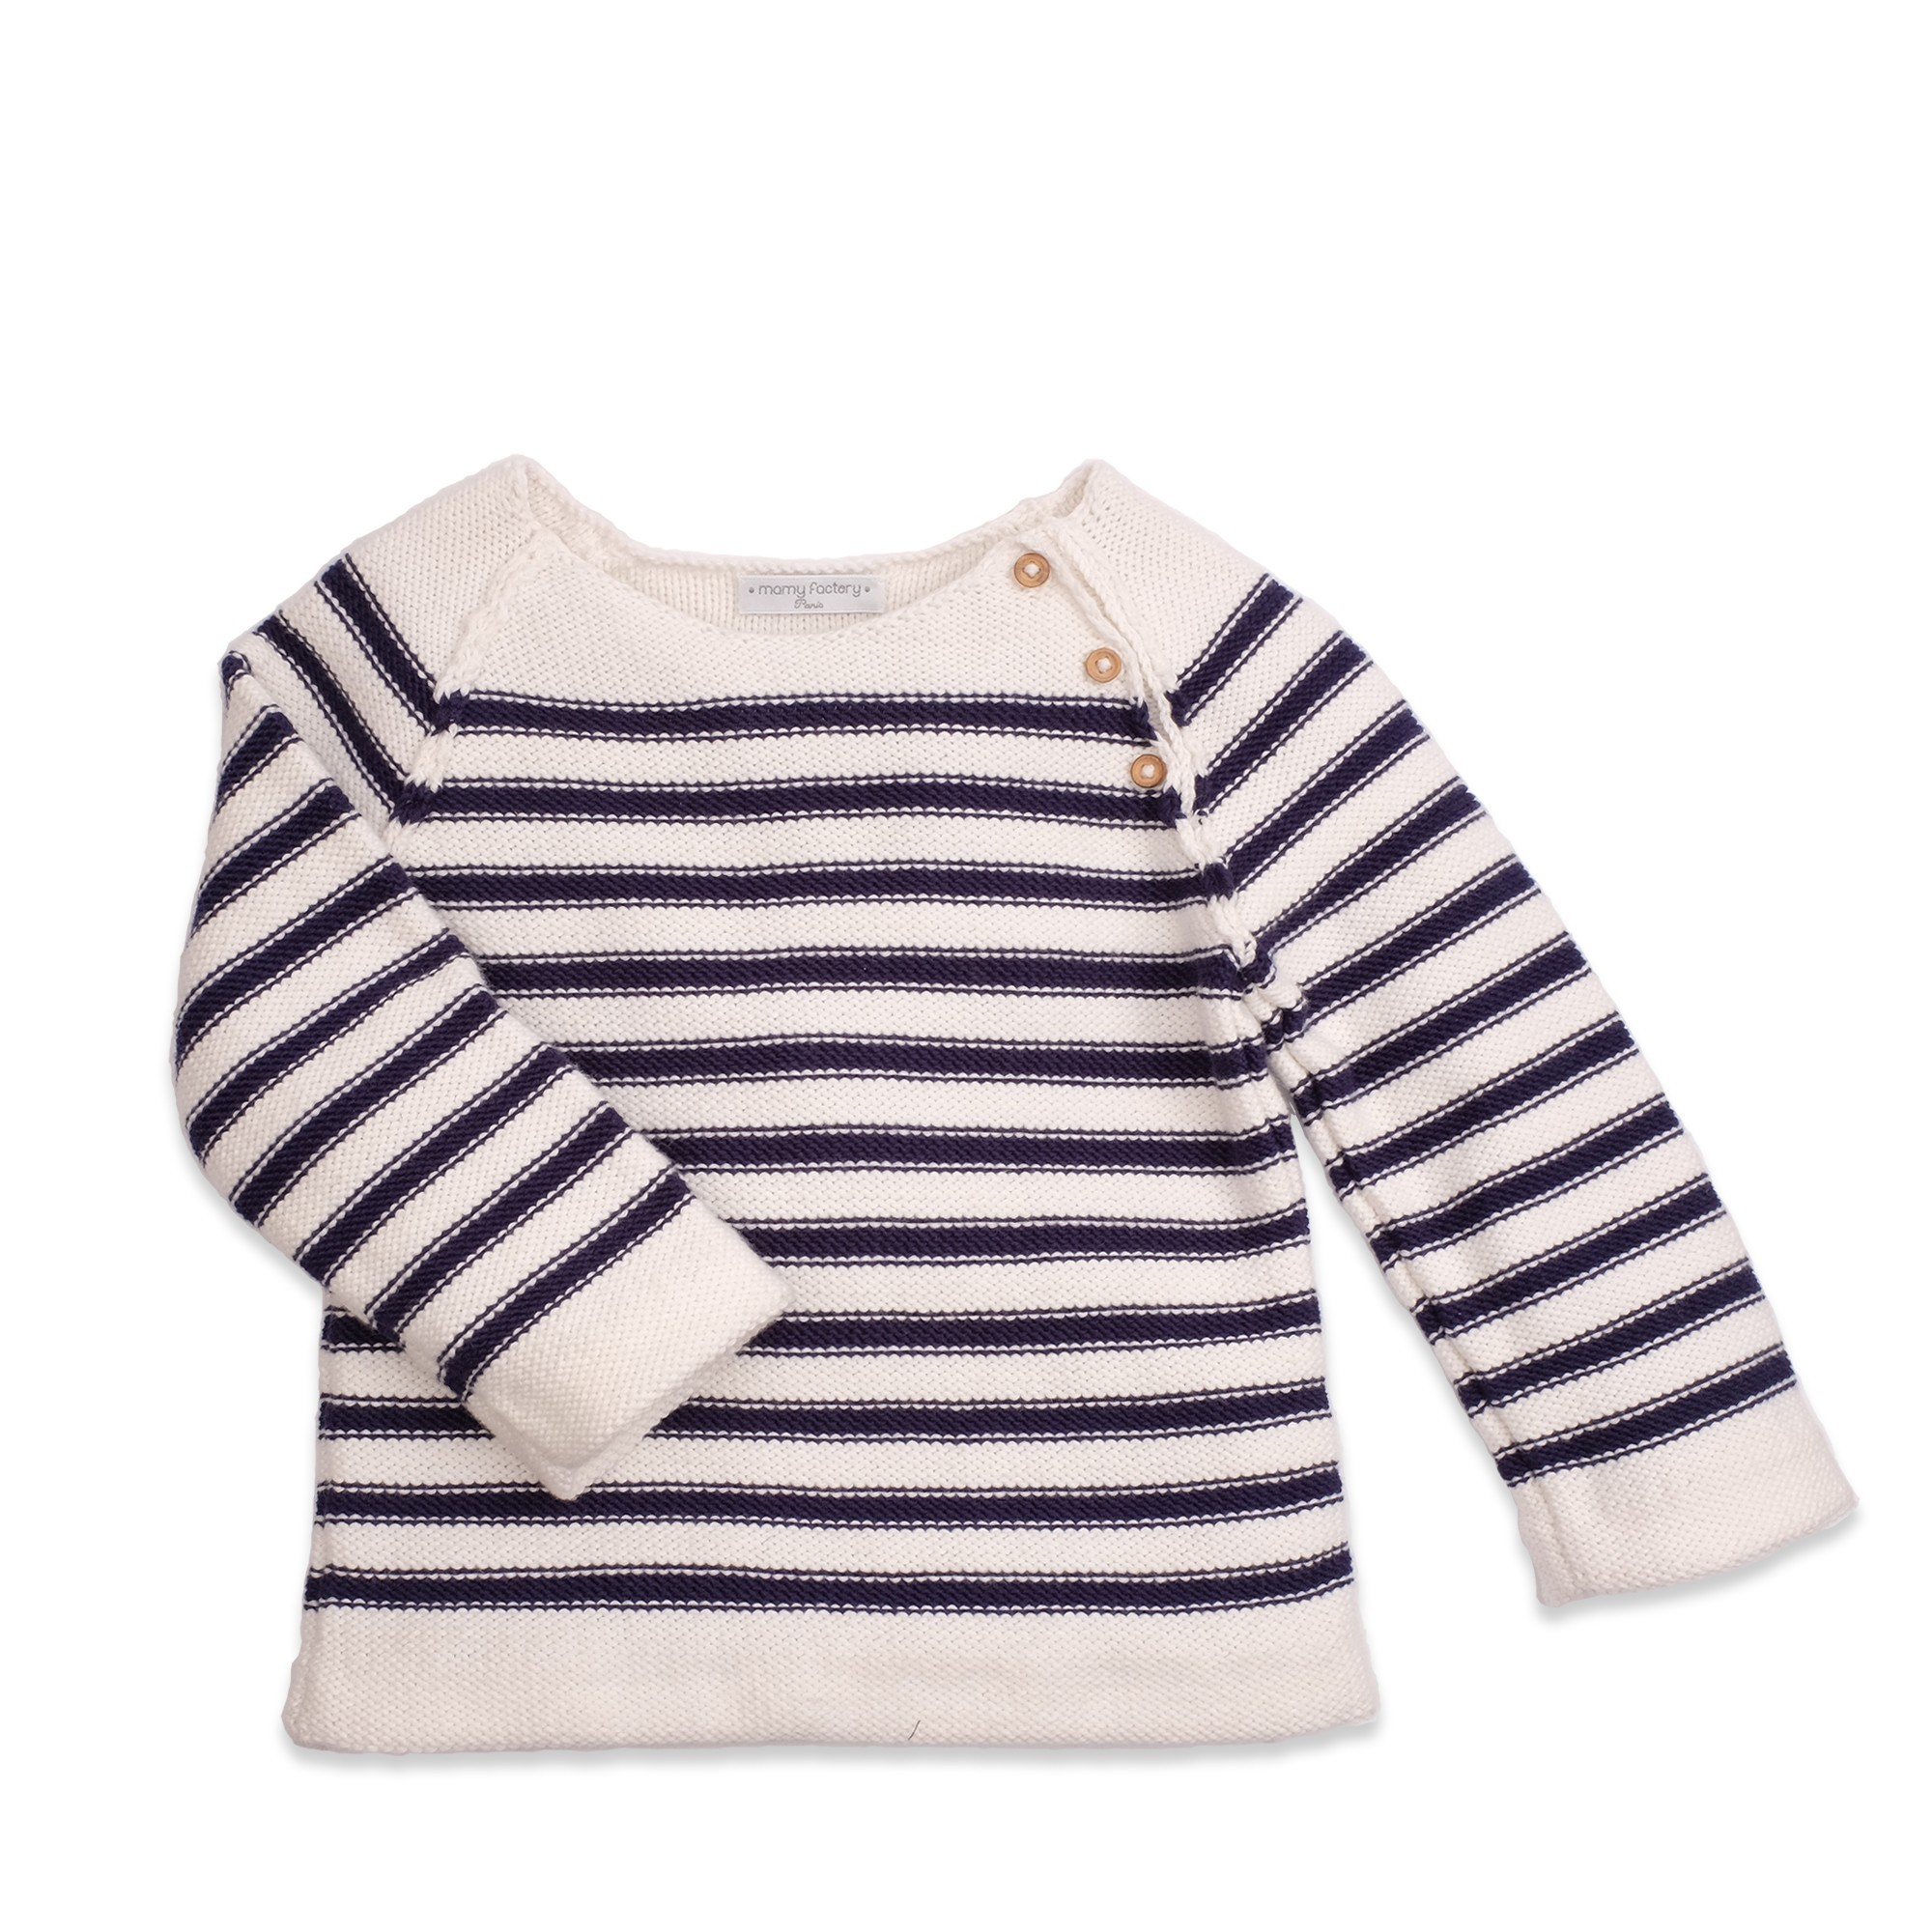 0ece6604e Granny s knitwear – natural white and navy-blue striped jumper. 85 ...